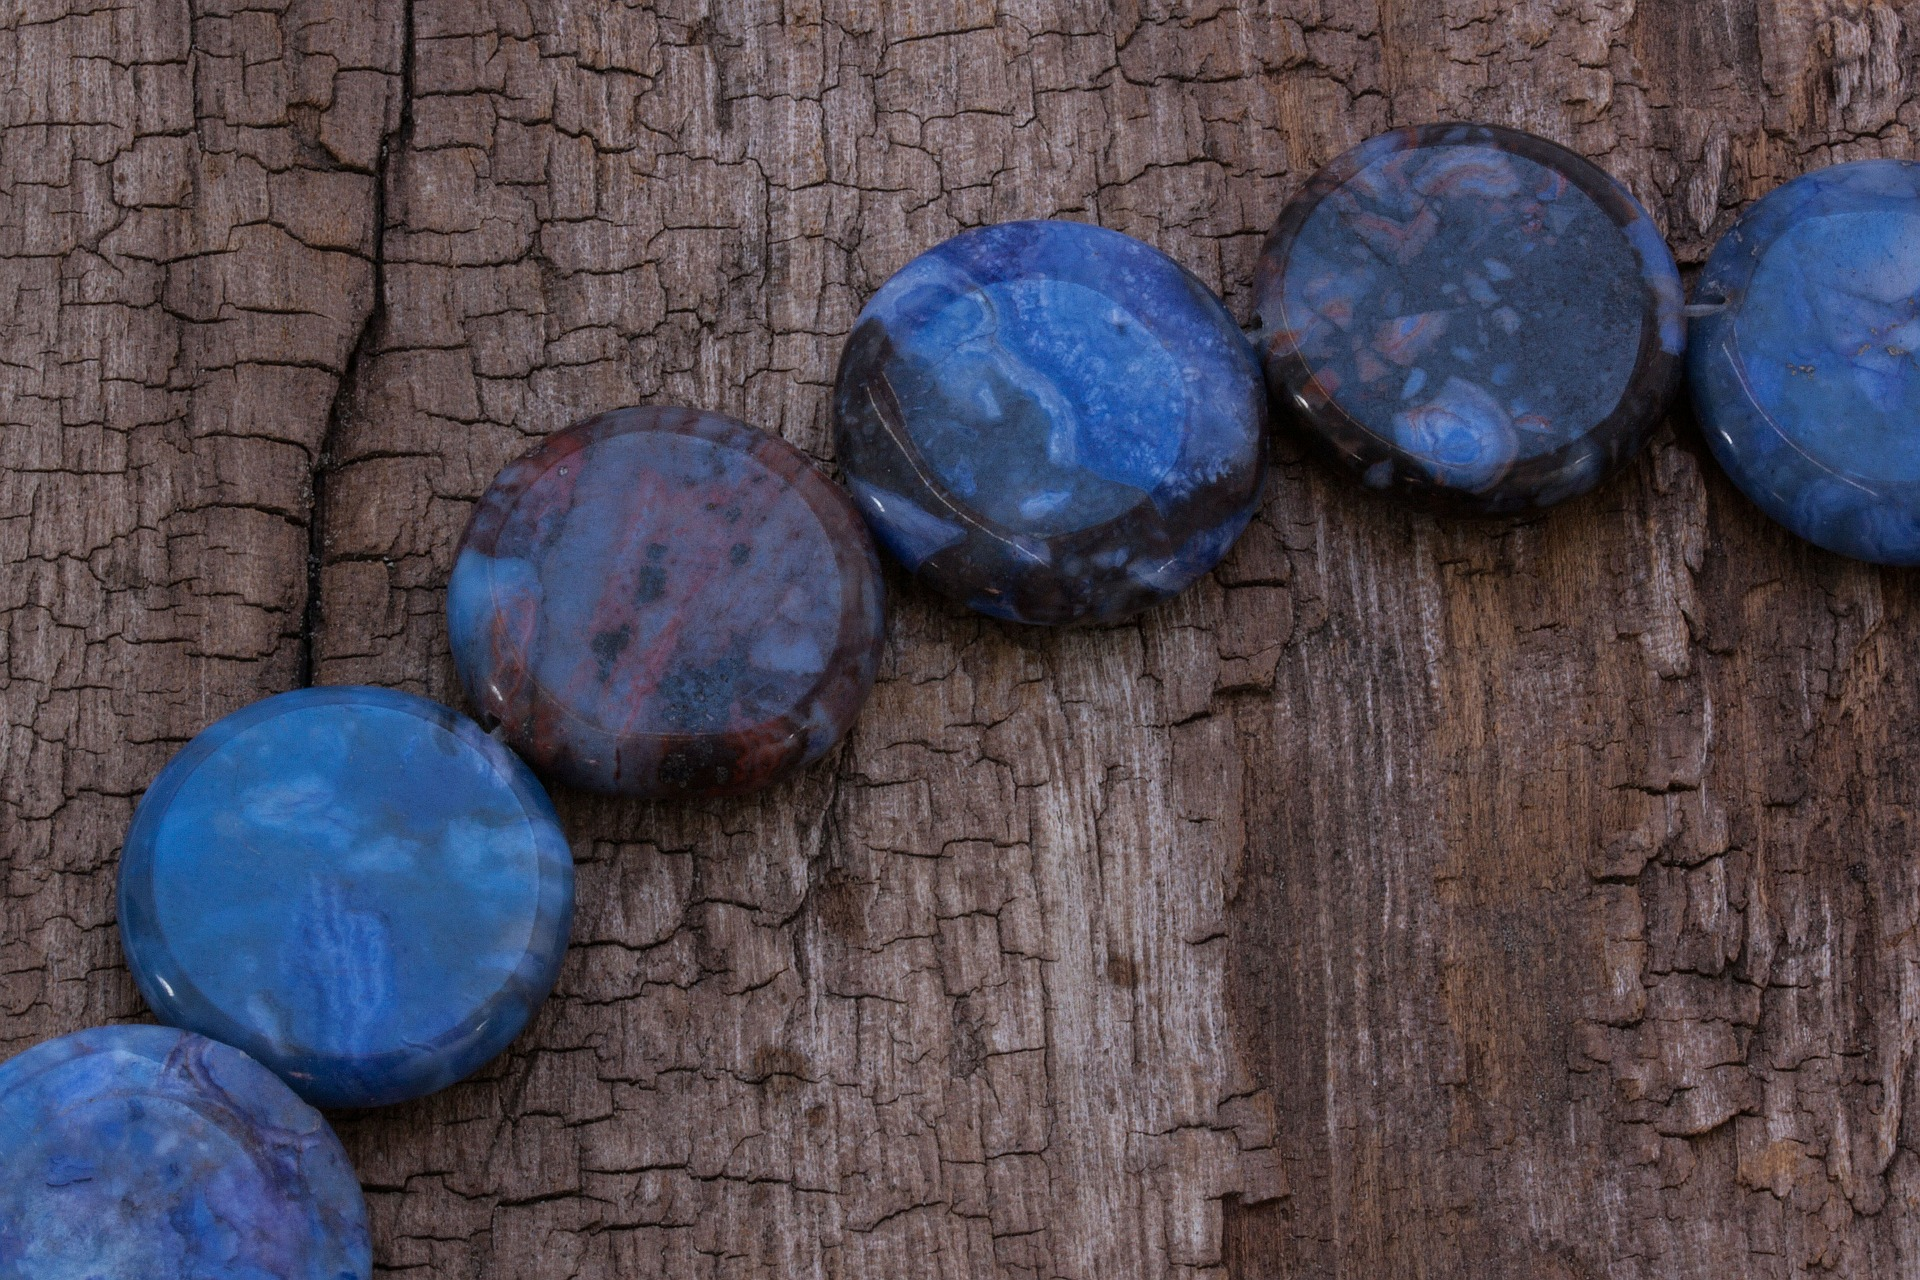 Sodalite, Mineral, Object, Texture, Wood, HQ Photo